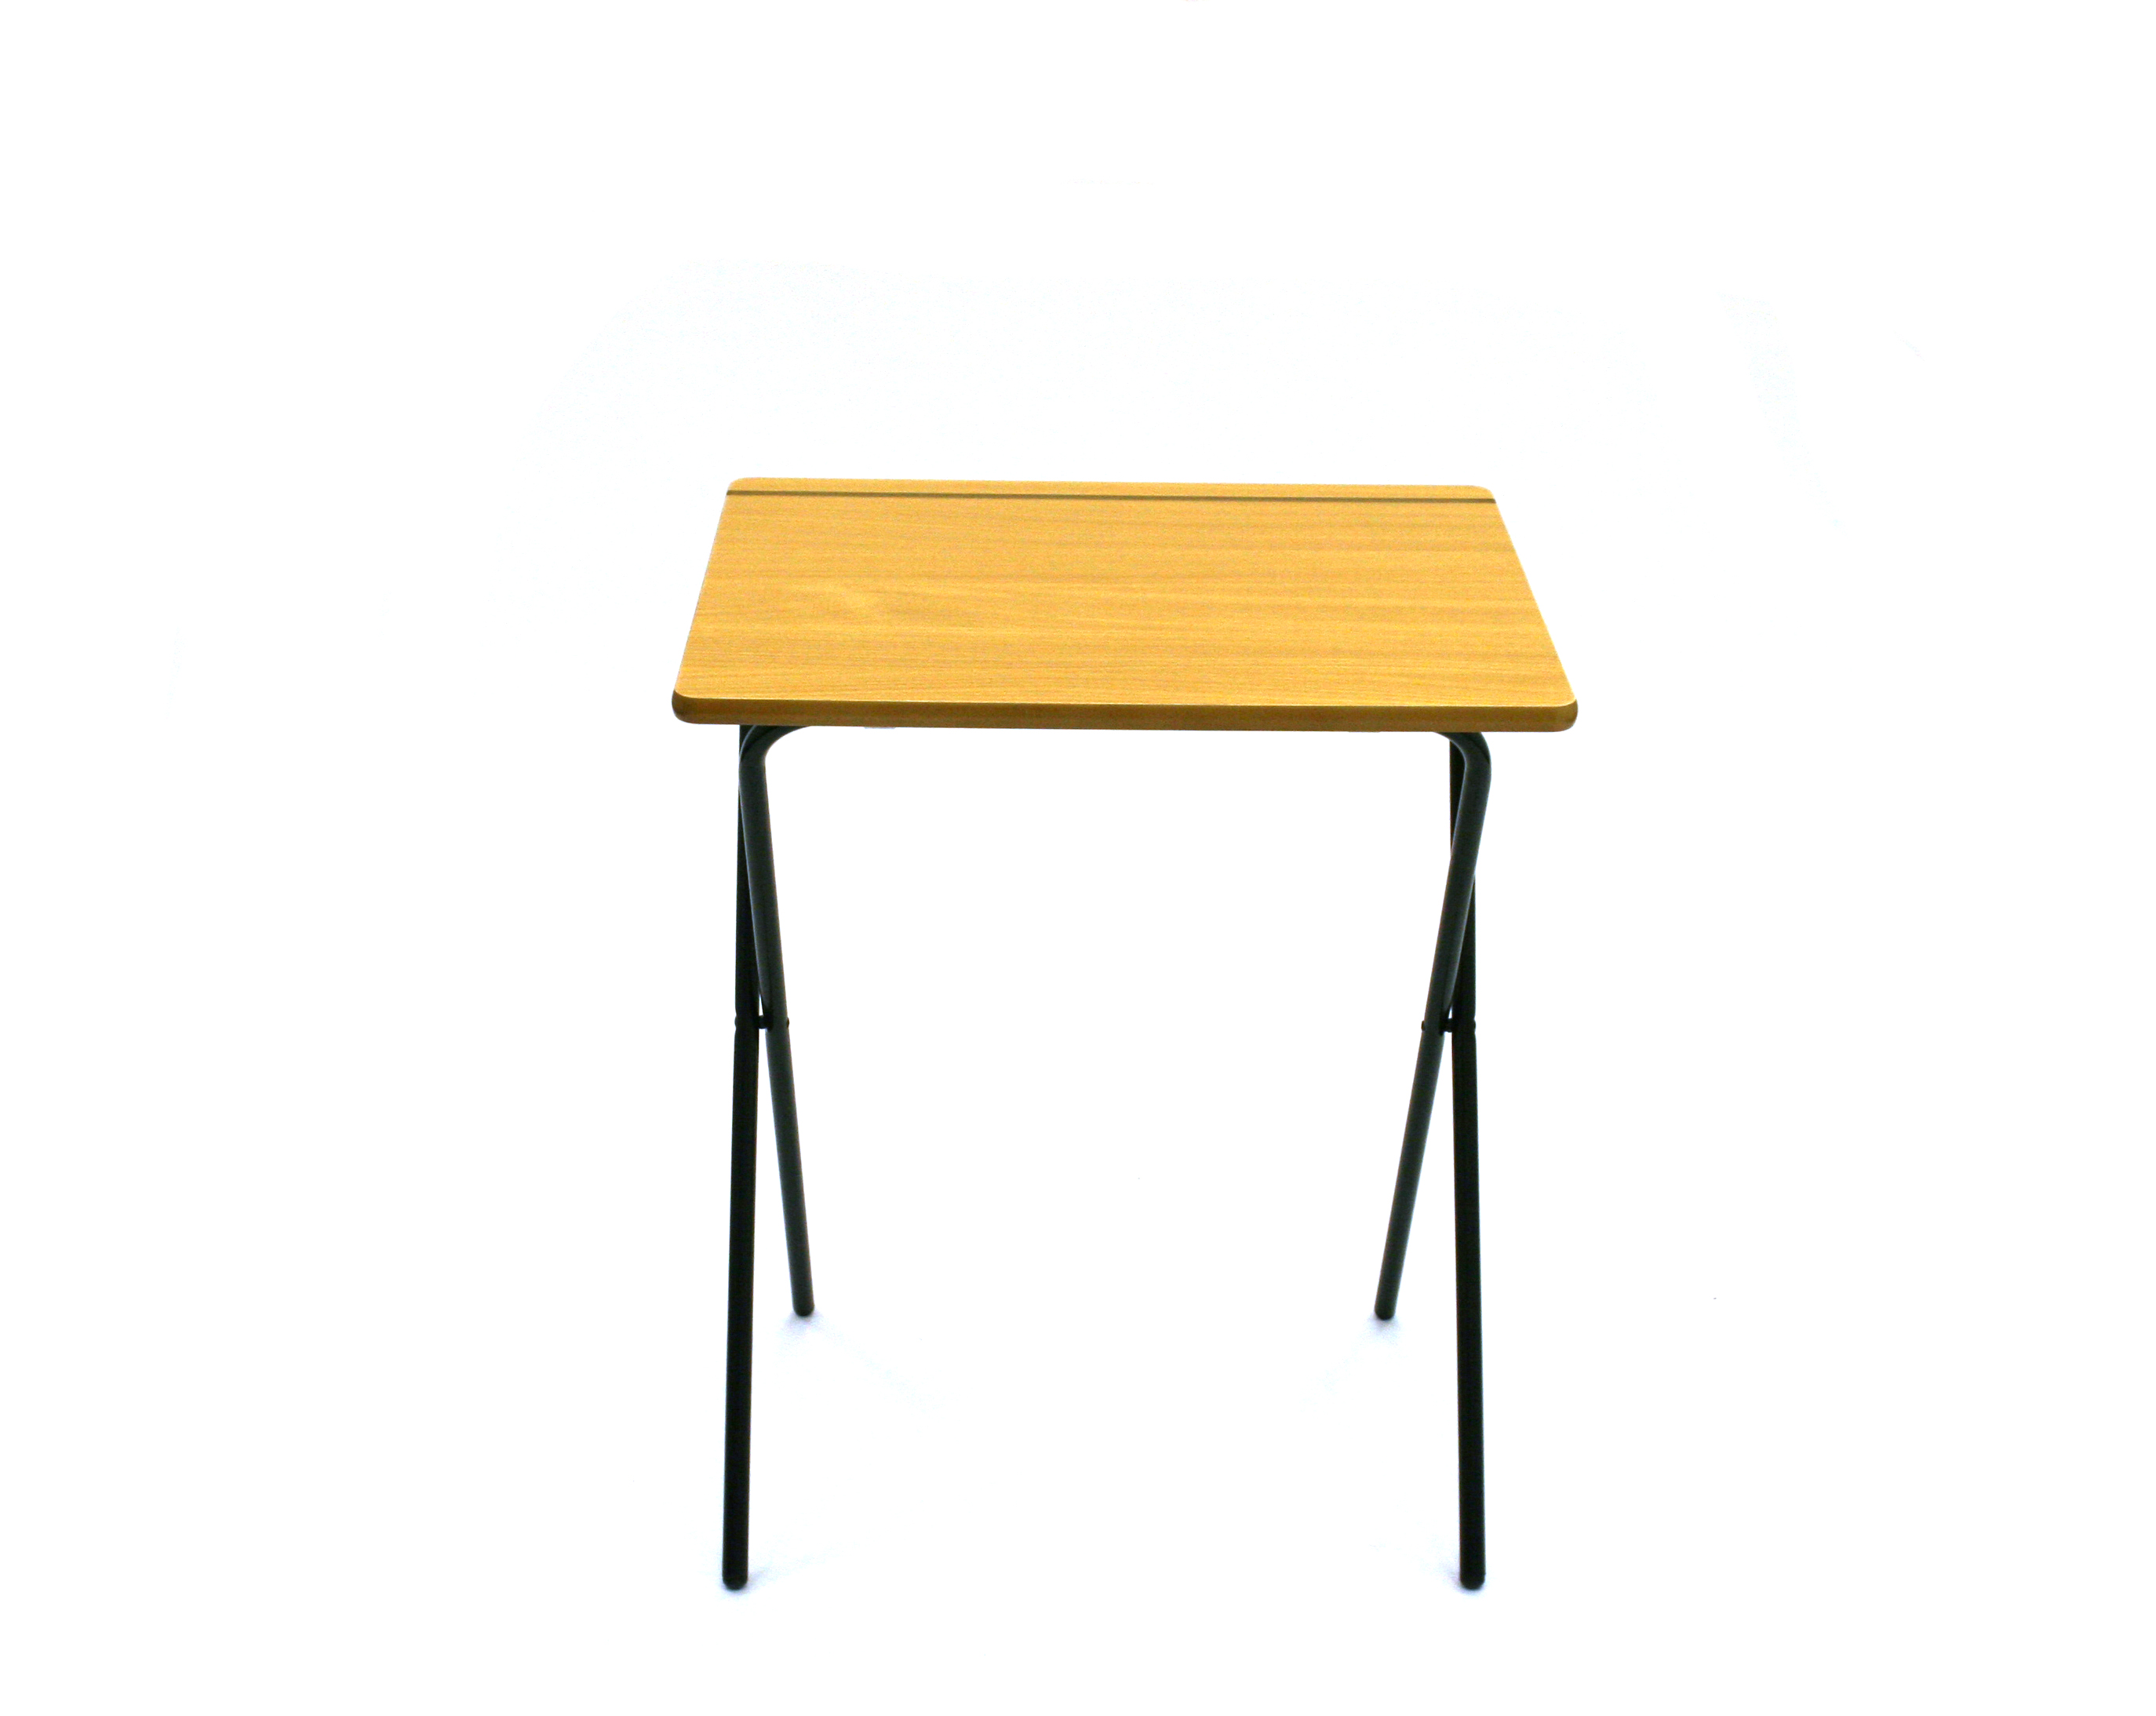 Folding Exam Desk Full Image - BE Furniture Sales